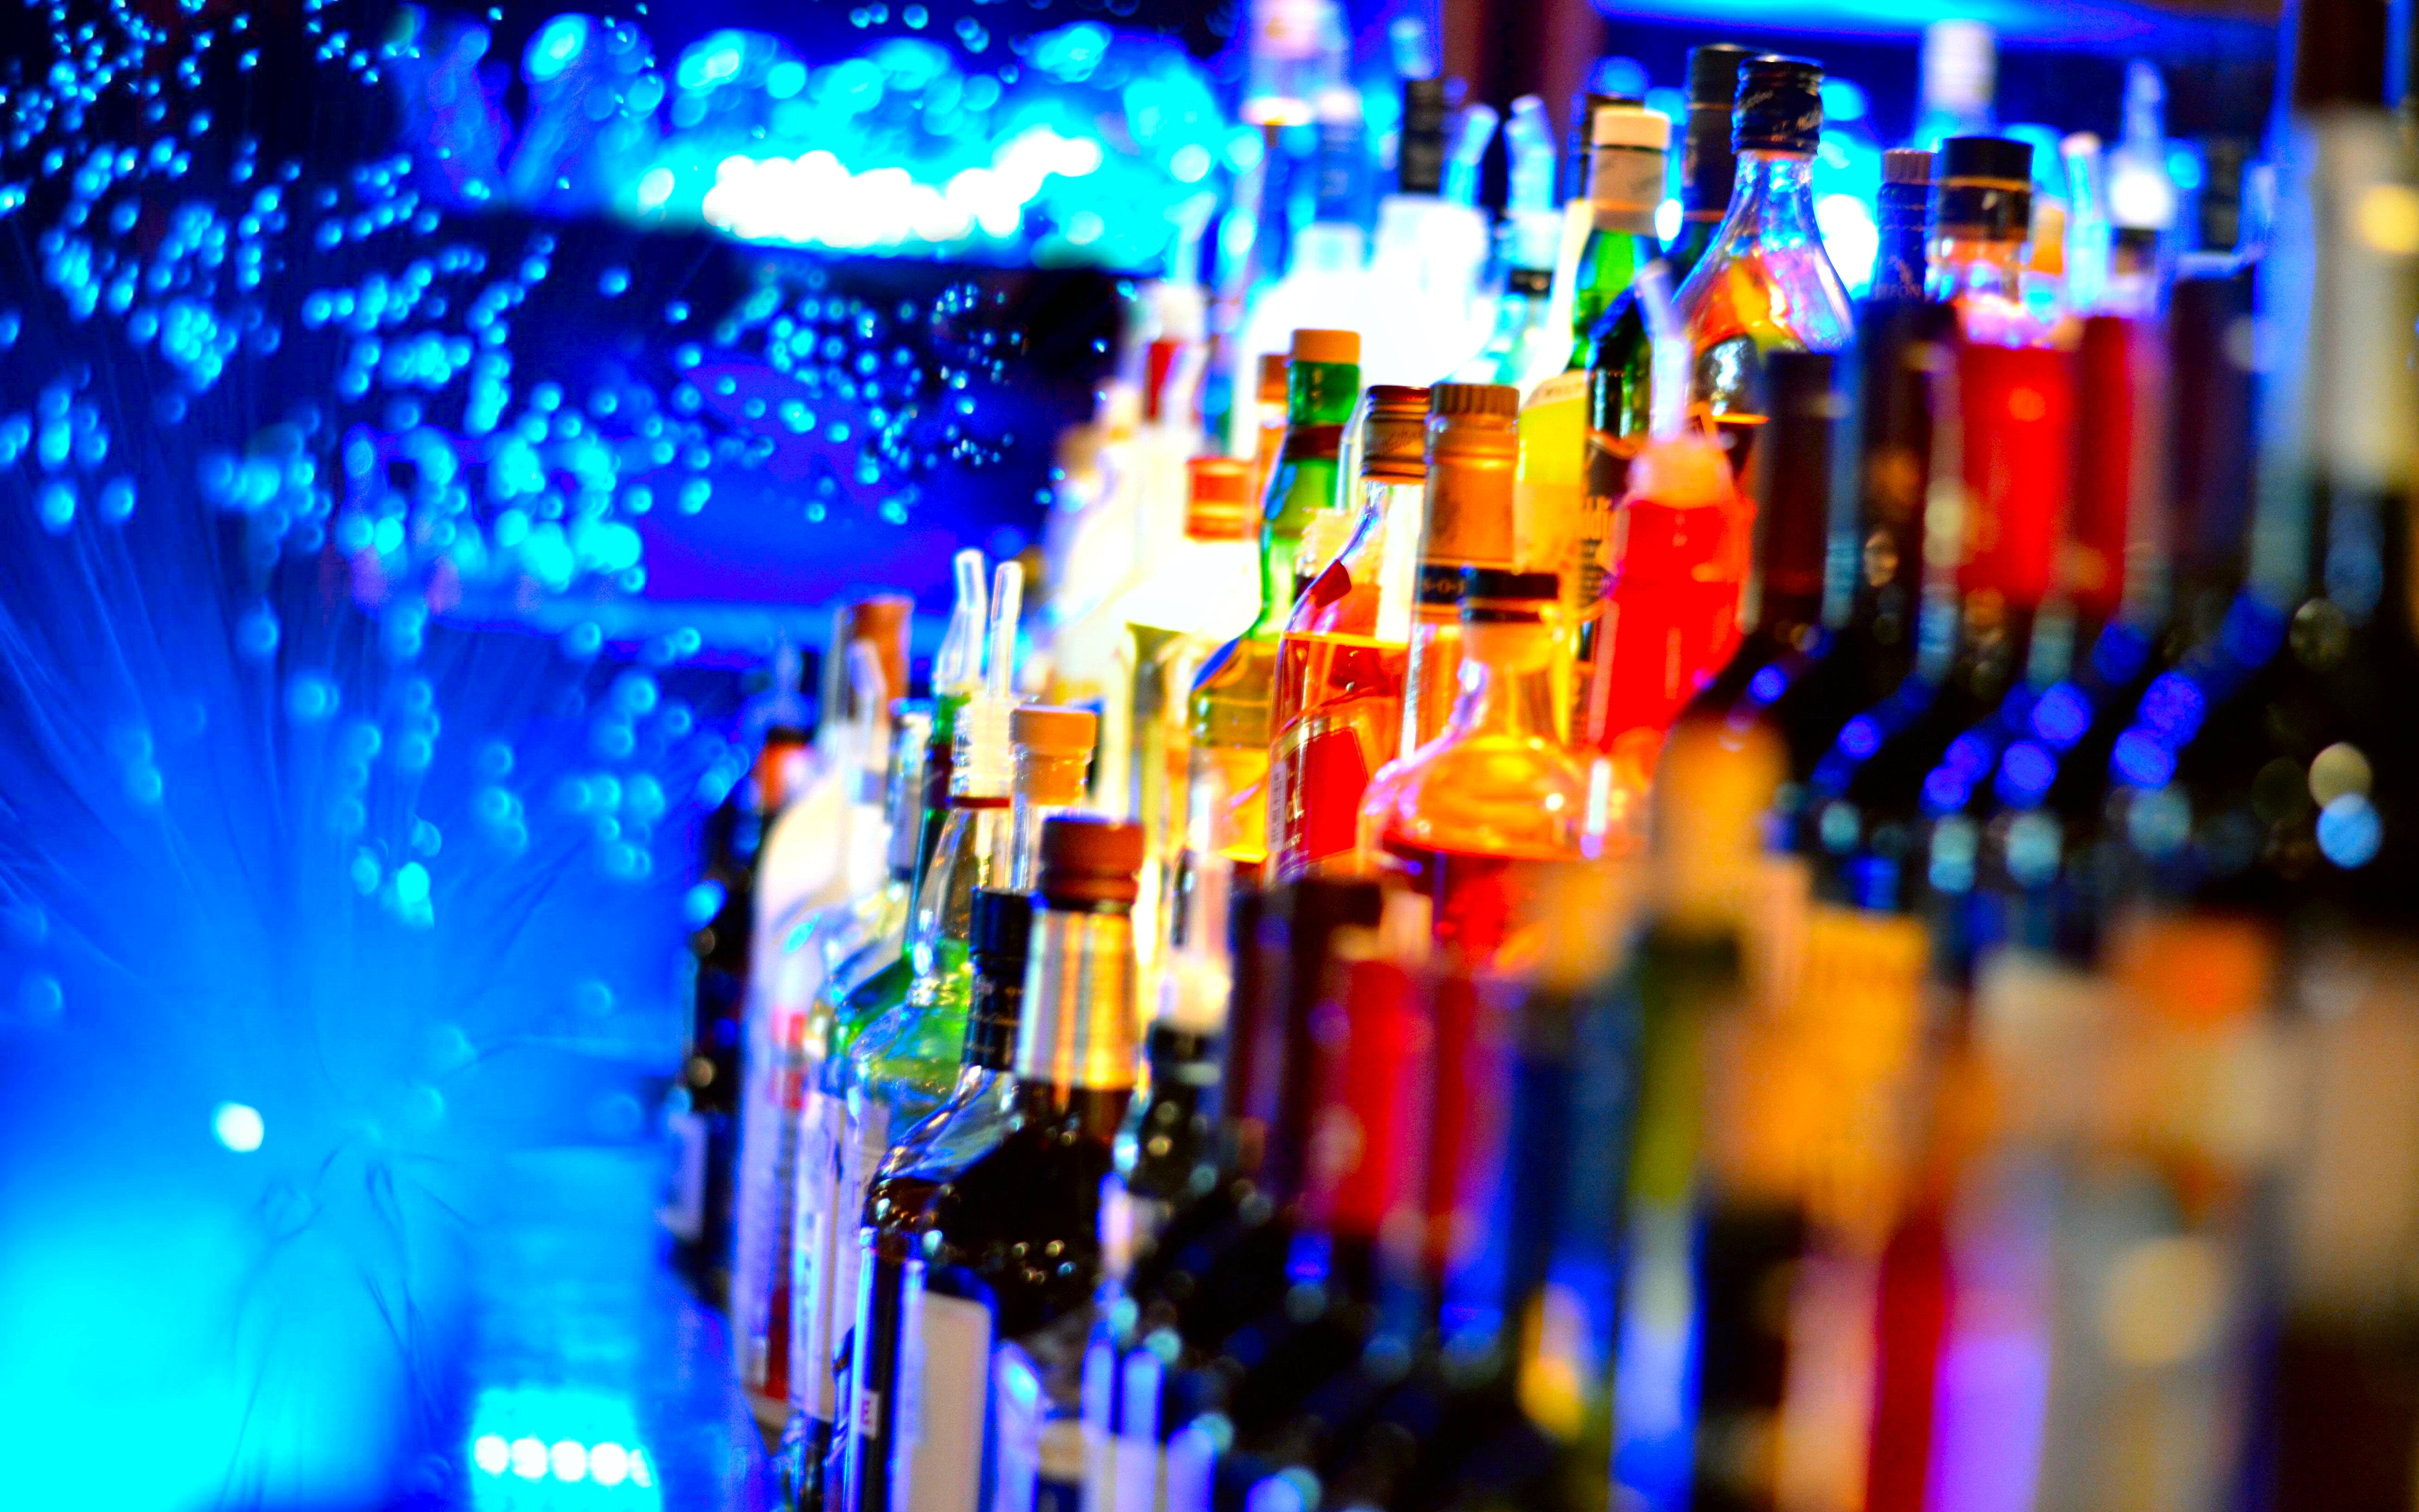 Bar background images galleries with for Lounge wallpaper